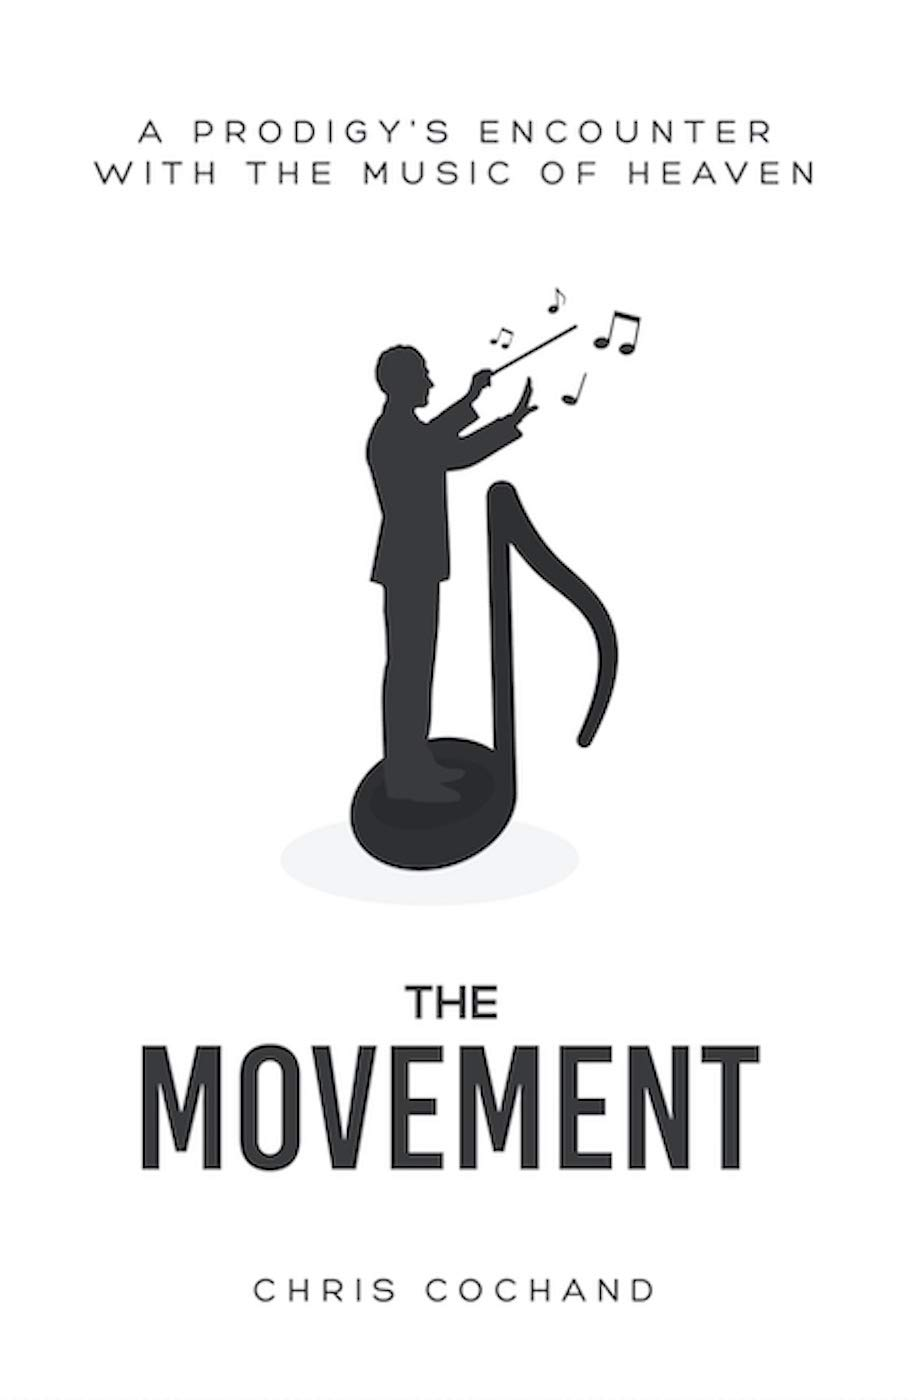 The Movement: A Prodigy's Encounter with the Music of Heaven